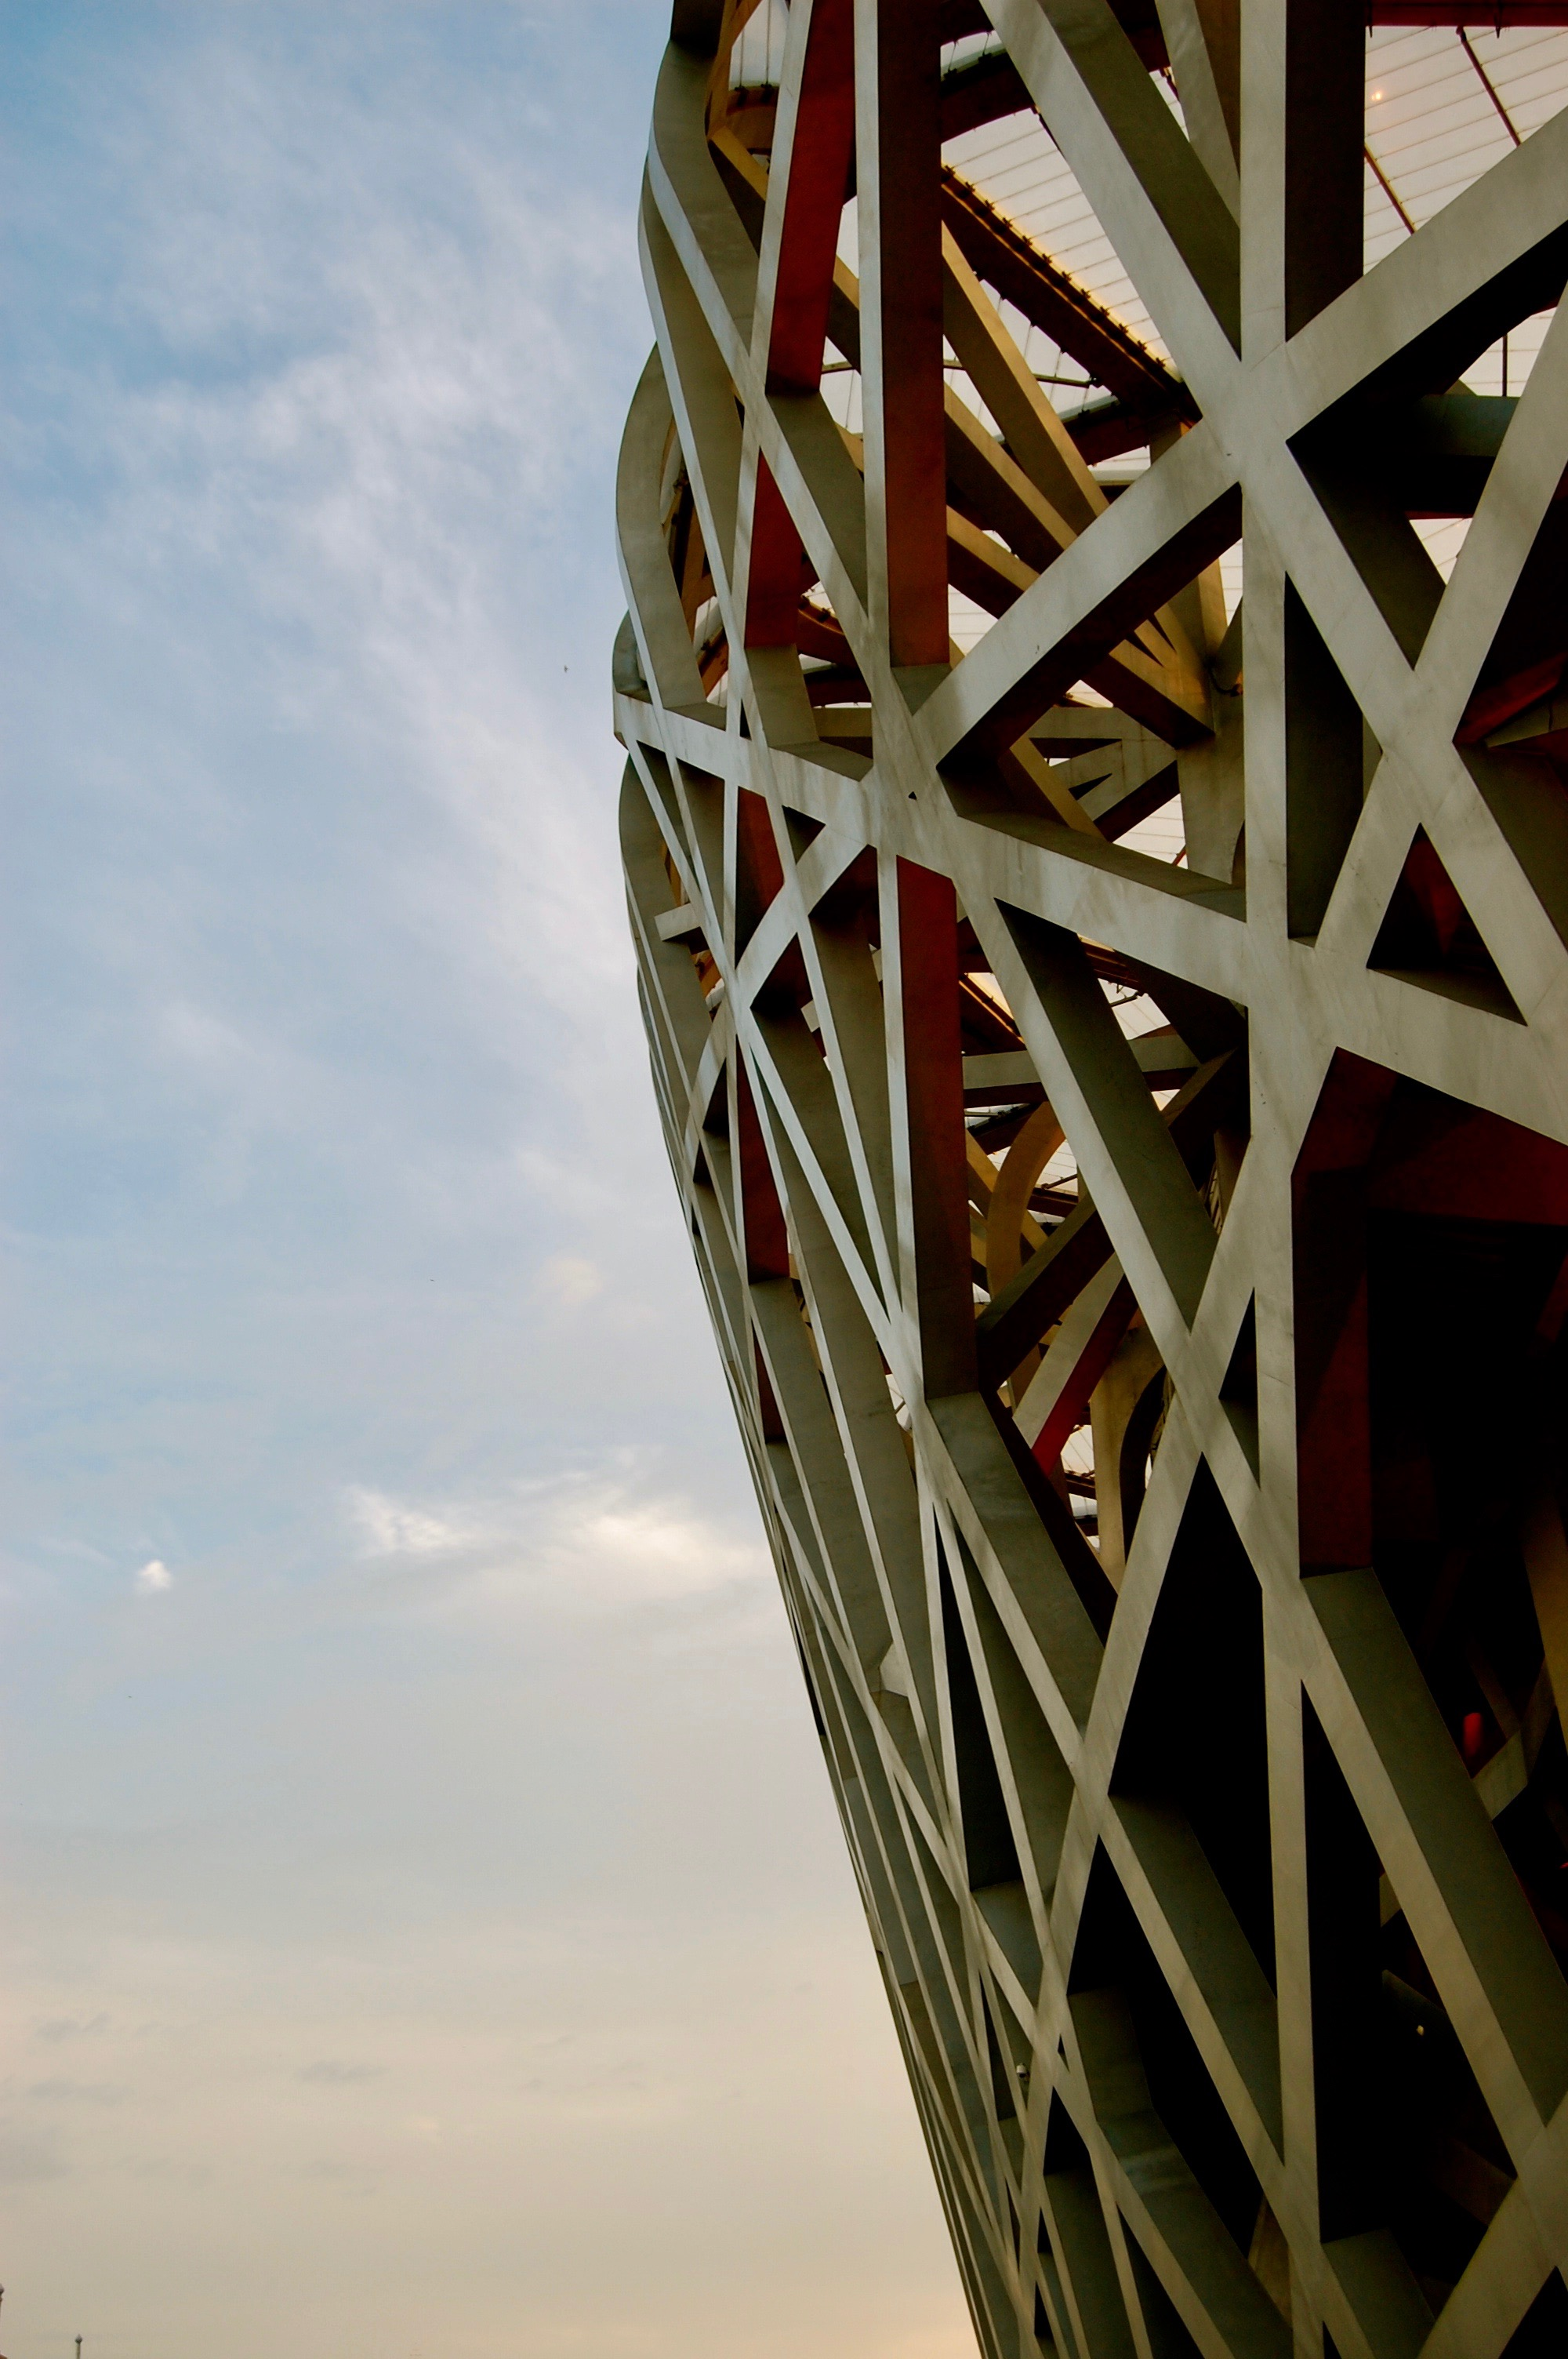 Sunset over the Bird's Nest Olympic Stadium (Beijing, China)